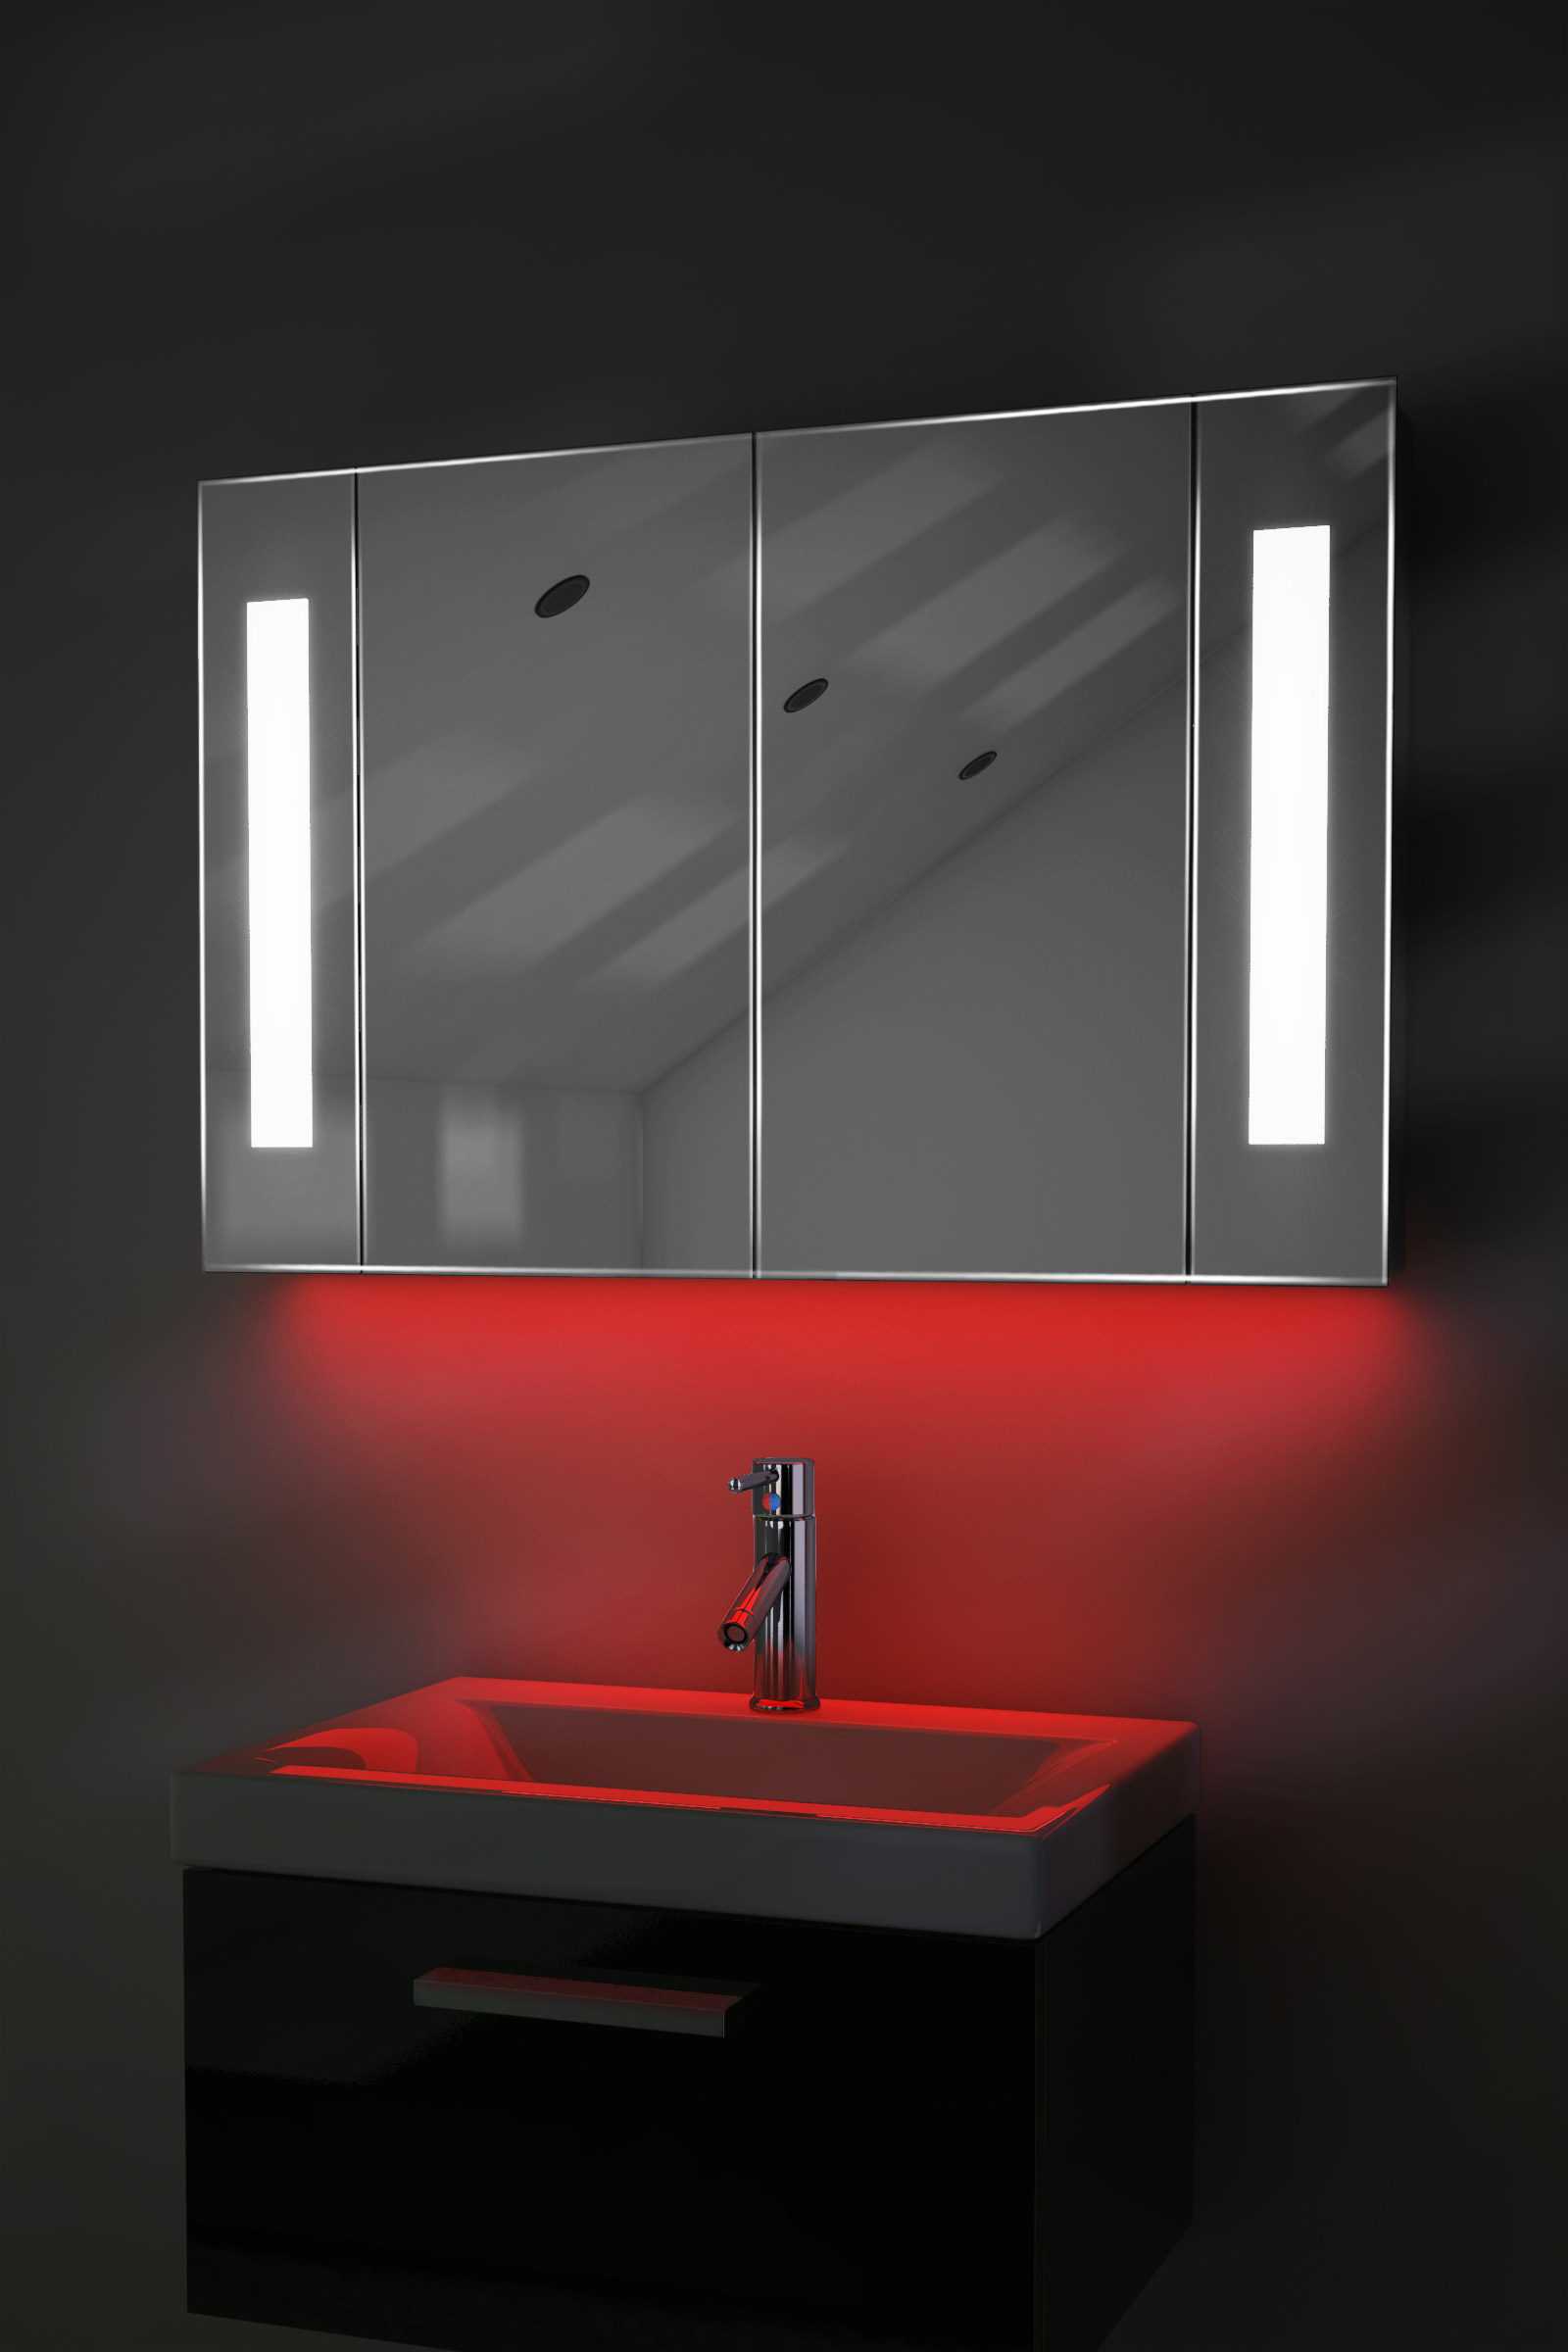 miroir de salle de bain rasage led avec bluetooth rasoir. Black Bedroom Furniture Sets. Home Design Ideas